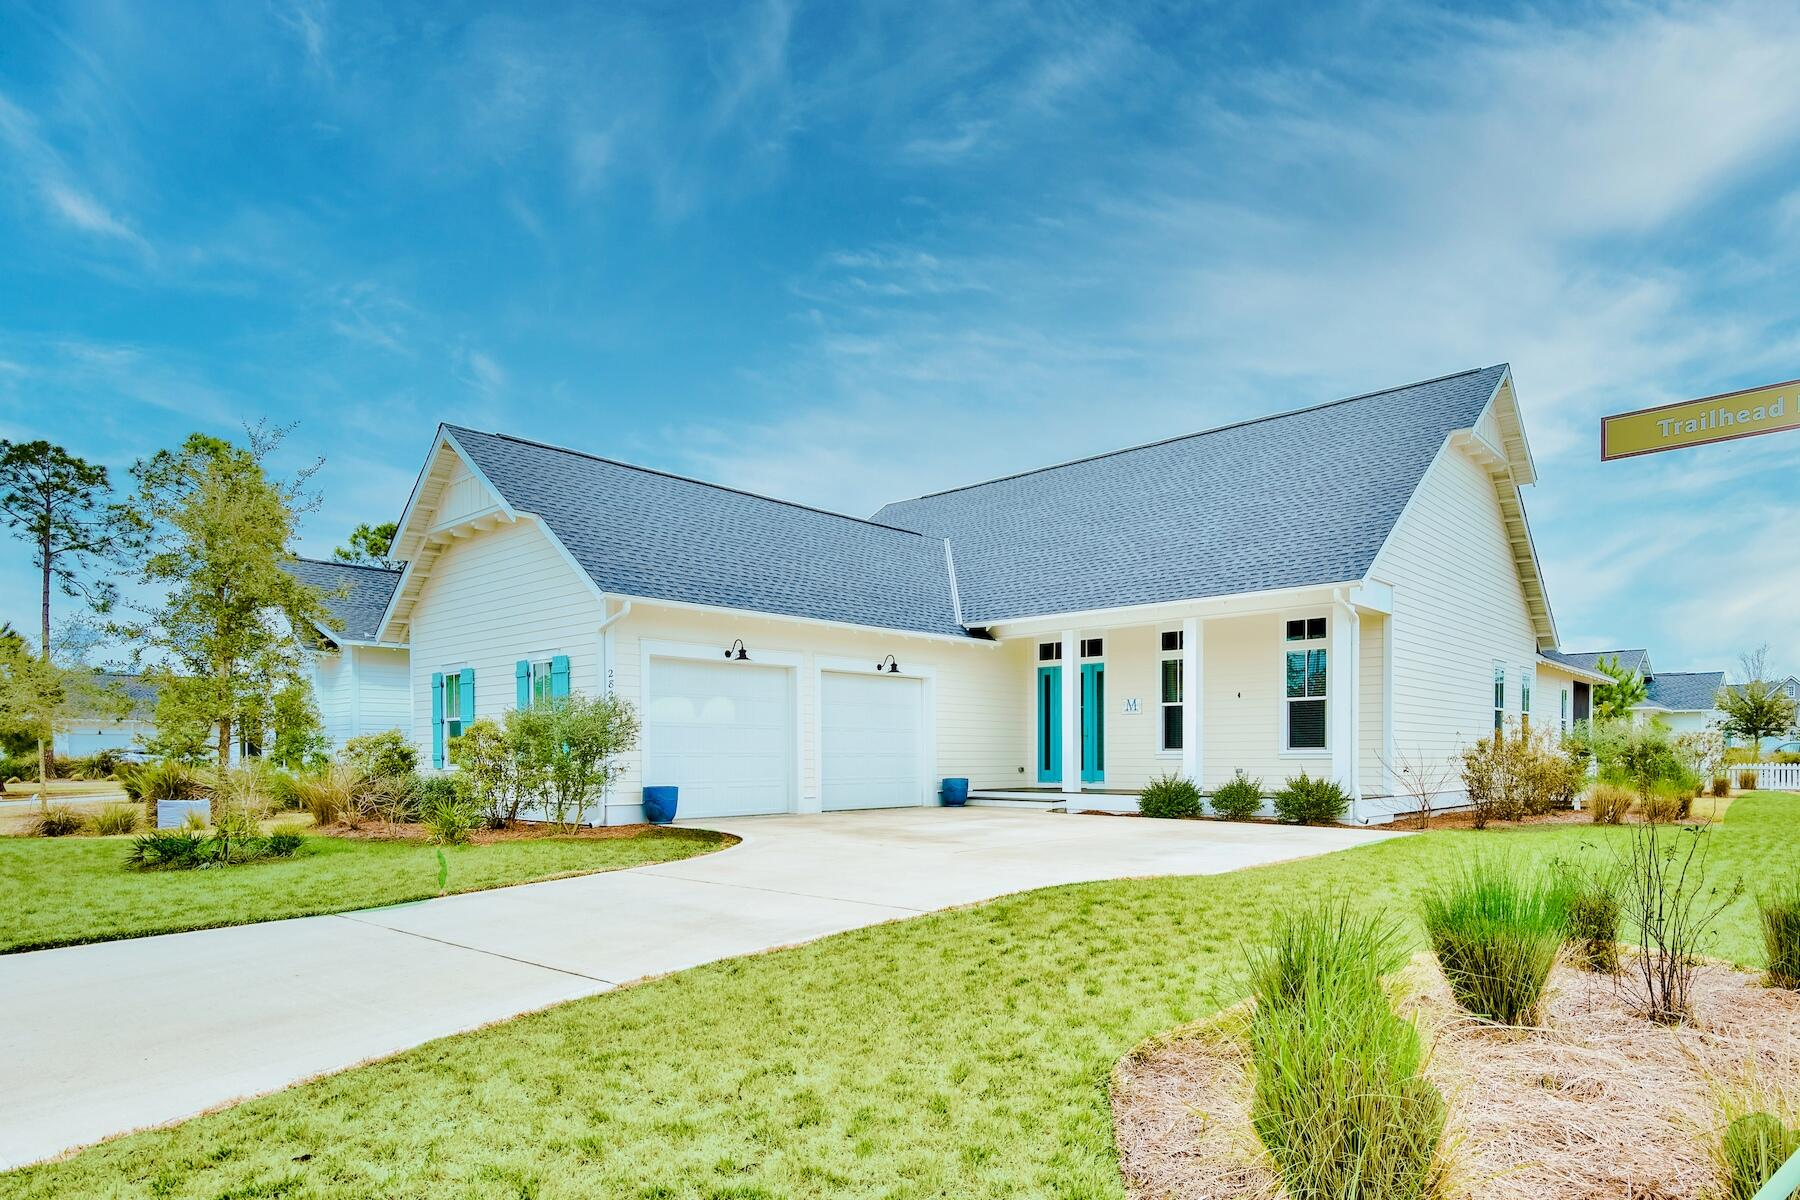 Photo of home for sale at 282 Trailhead, Inlet Beach FL